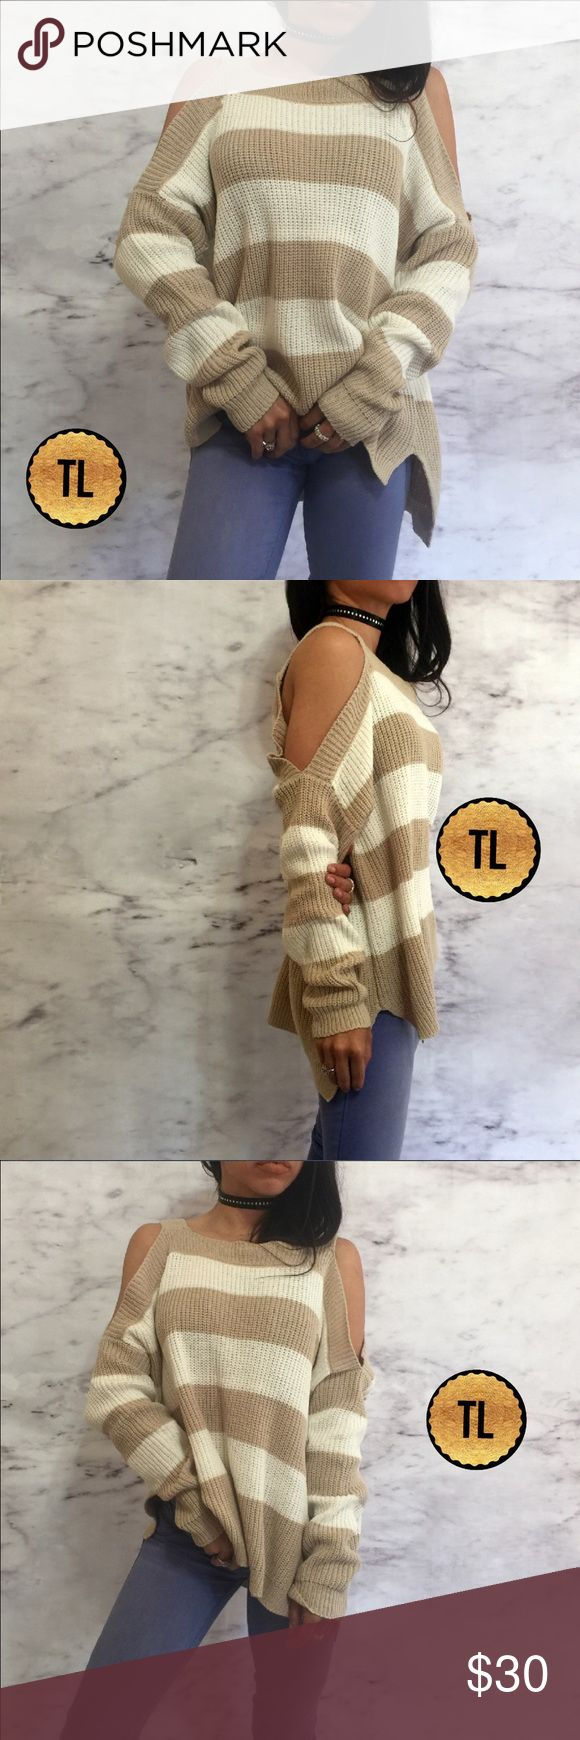 "Lush stripes kicks shoulder heavy knit sweater •brand new  •ships tomorrow •brand : TIMELESS look boutique  •no trades  •true to size  •material: 60% cotton 40% acrylic  •colors: khaki / white nautical horizontal stripes   Model: goguios in insta 📸 (account manager) modeling small  Please visit ""Closet Rules"" for more info about us :) Sweaters Crew & Scoop Necks"